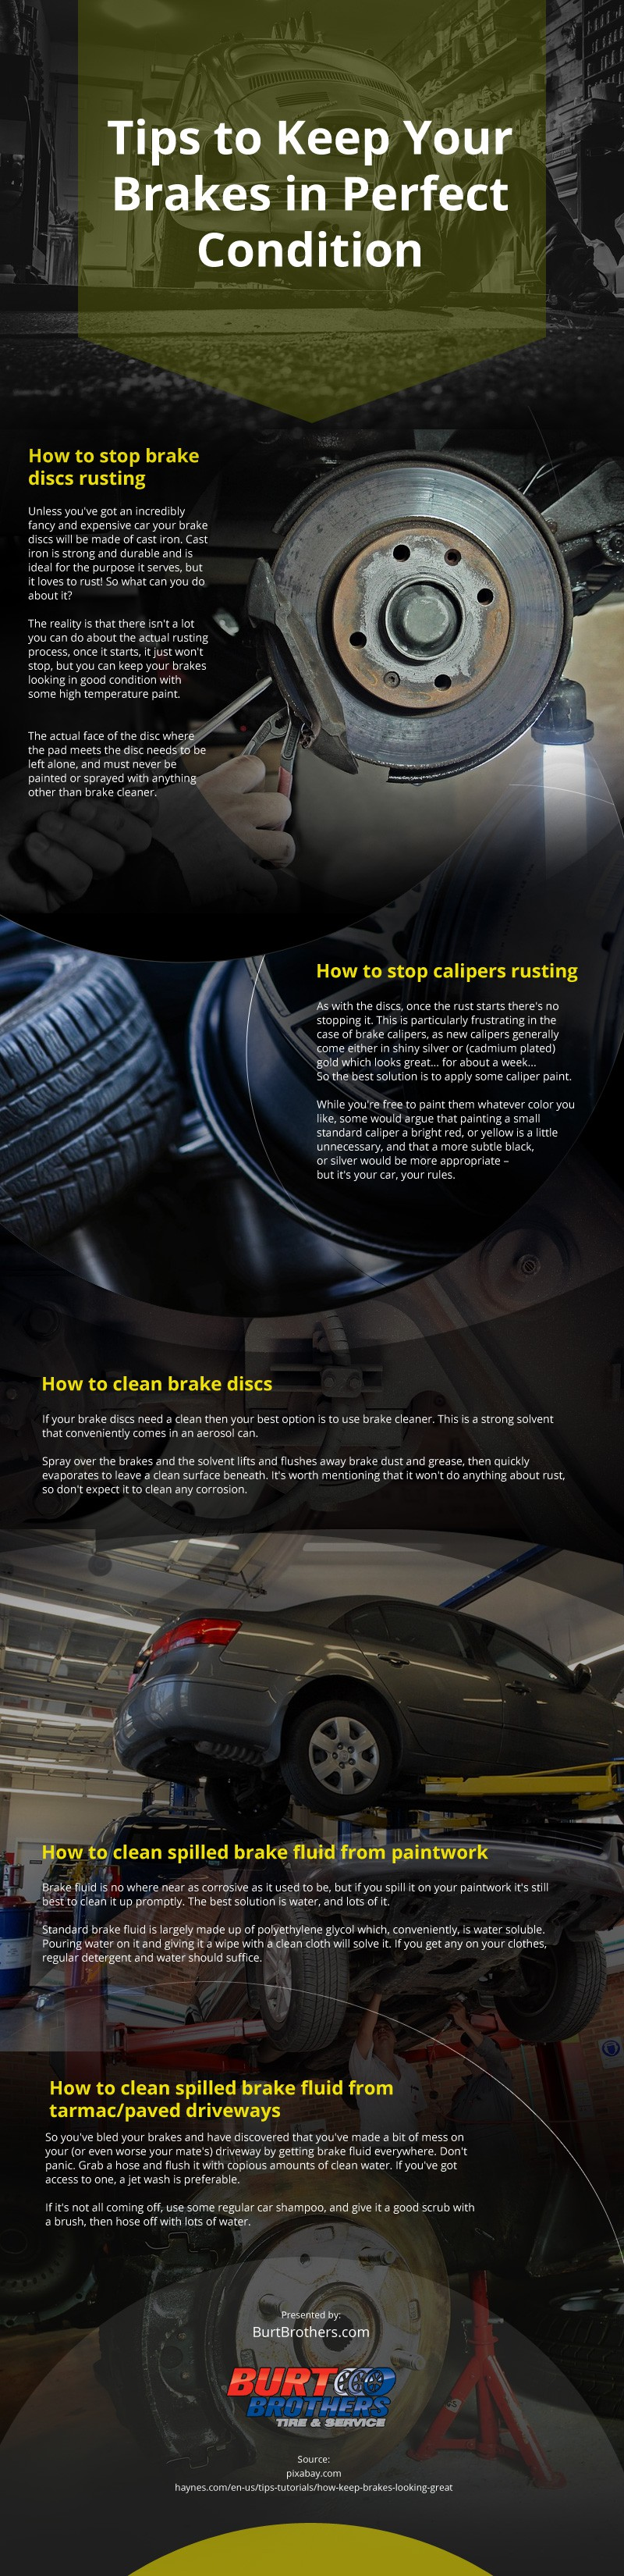 Tips to Keep Your Brakes in Perfect Condition Infographic